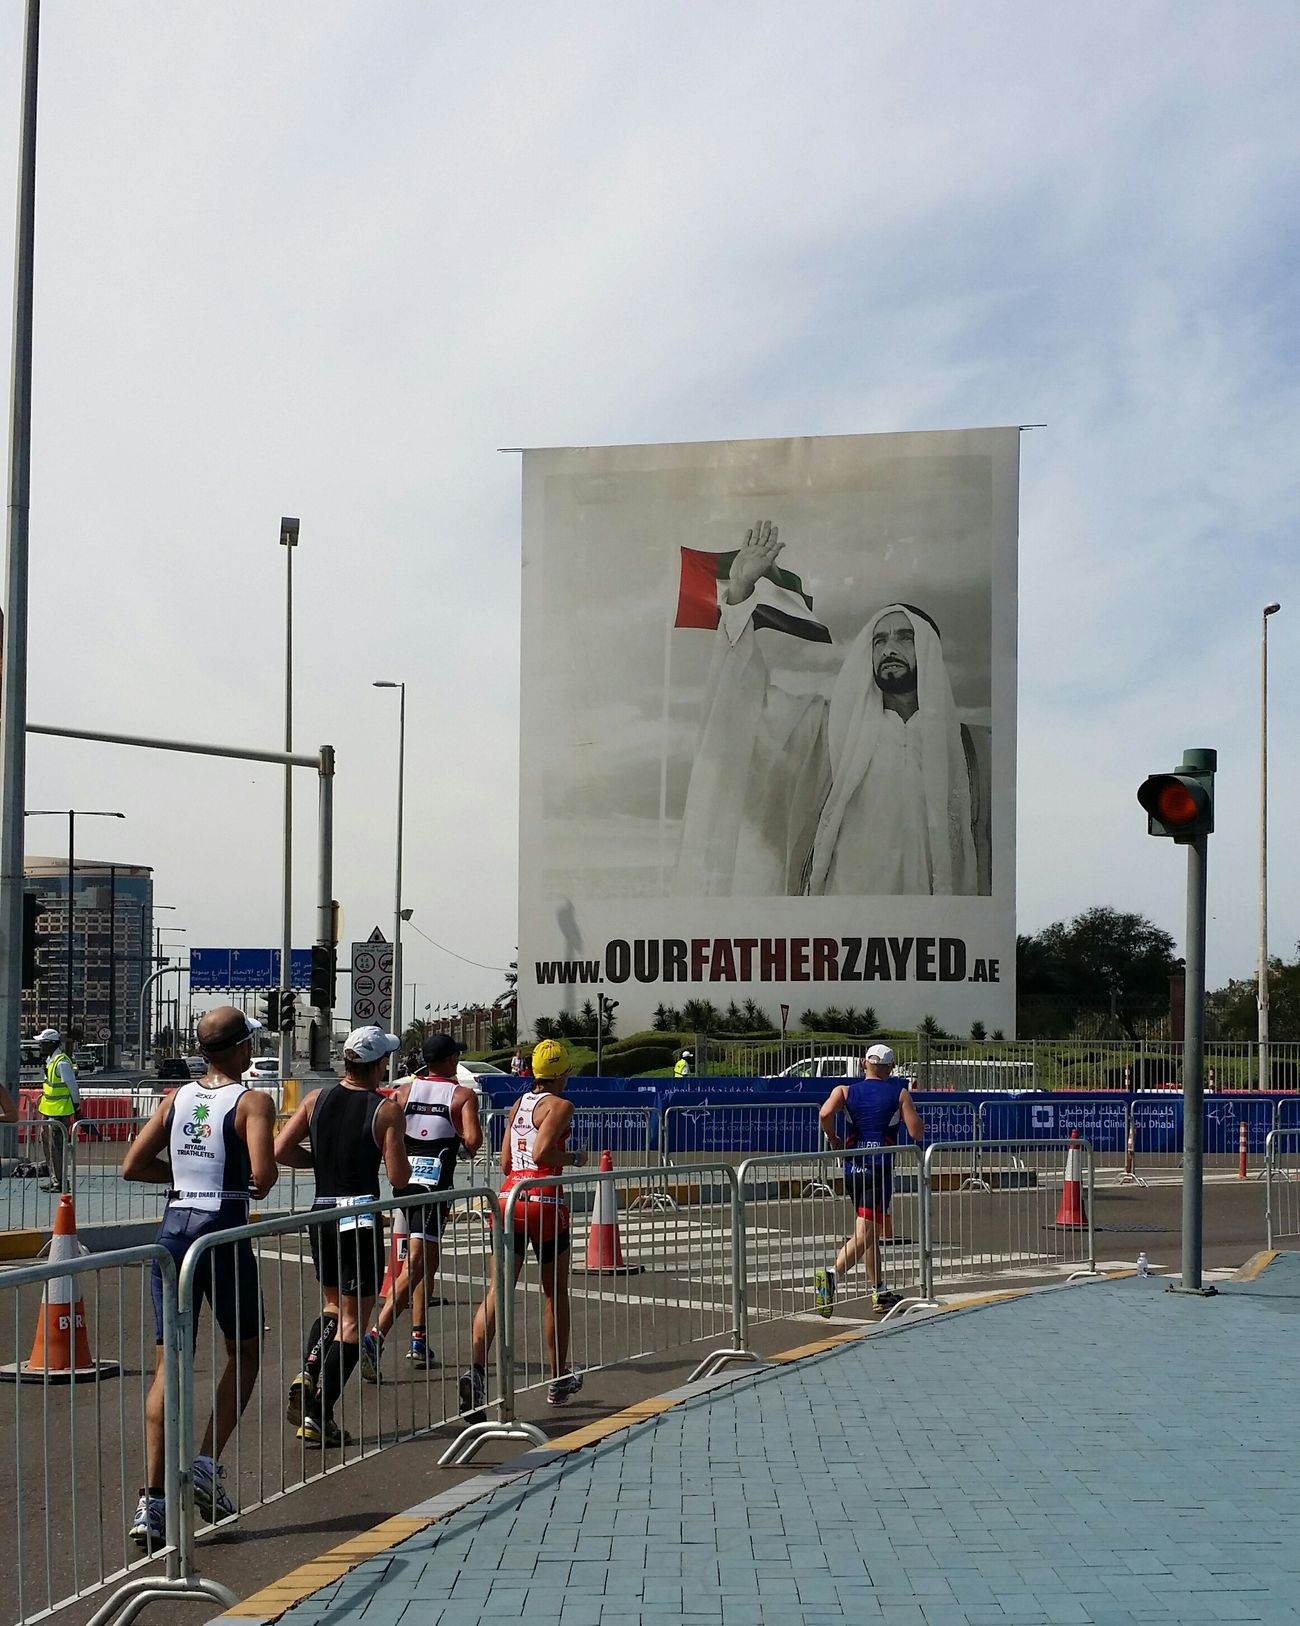 Uae,abudhabi International TRIATHLON Championshipat Corniche Abudhabi. The portrait is of late Sheikh_Zayed the fouder of the United Arab Emirates may Allah bless his soul.